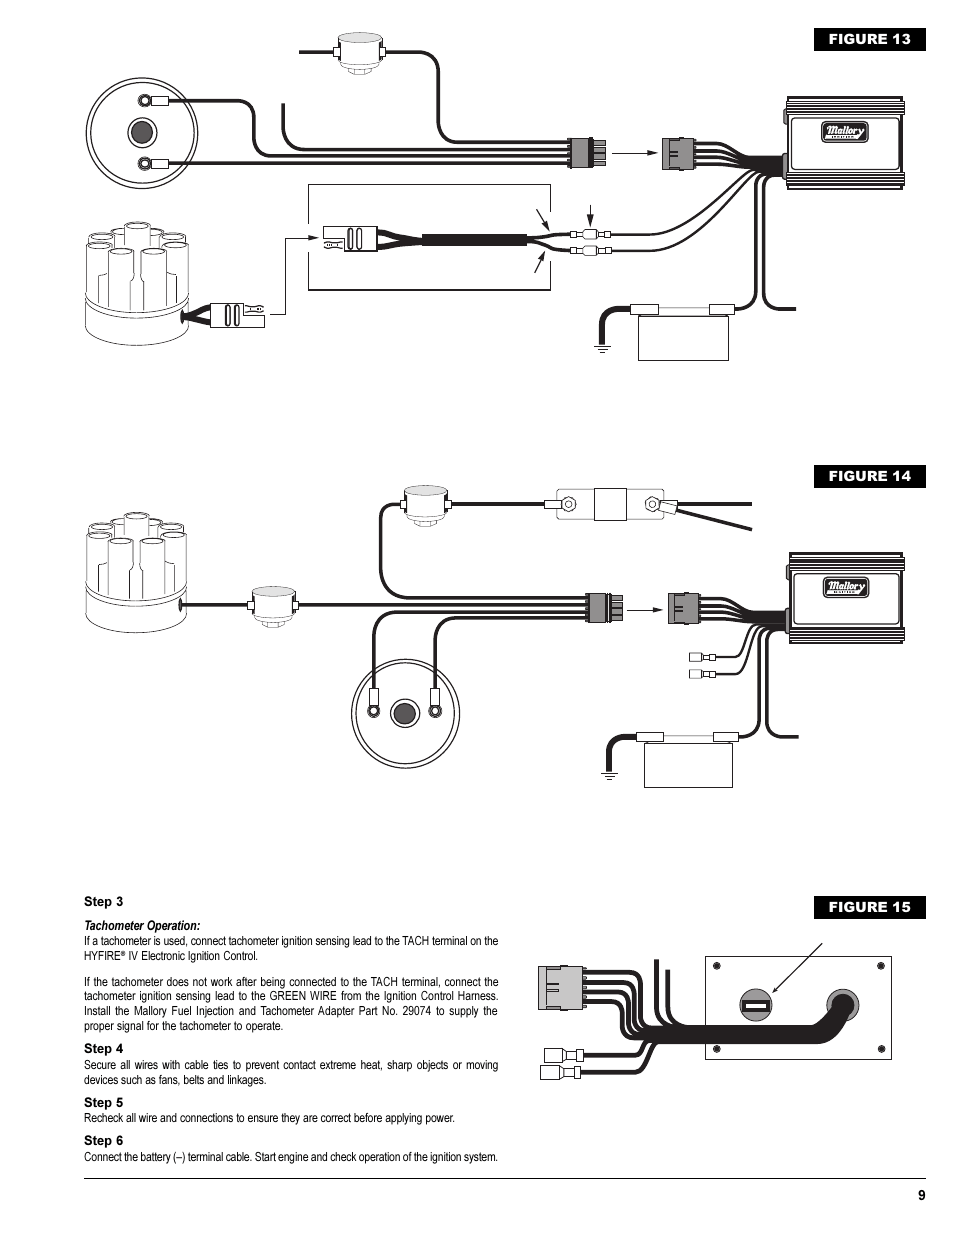 mallory ignition mallory hyfire iv series ignition system 692_697 page9?resize\\\\\\\\\\\\\\\\\\\\\\\\\\\\\=665%2C861 1974 plymouth duster wiring diagram instrument 1974 plymouth 1974 Dodge Dart Wiper Wiring Pics at mifinder.co